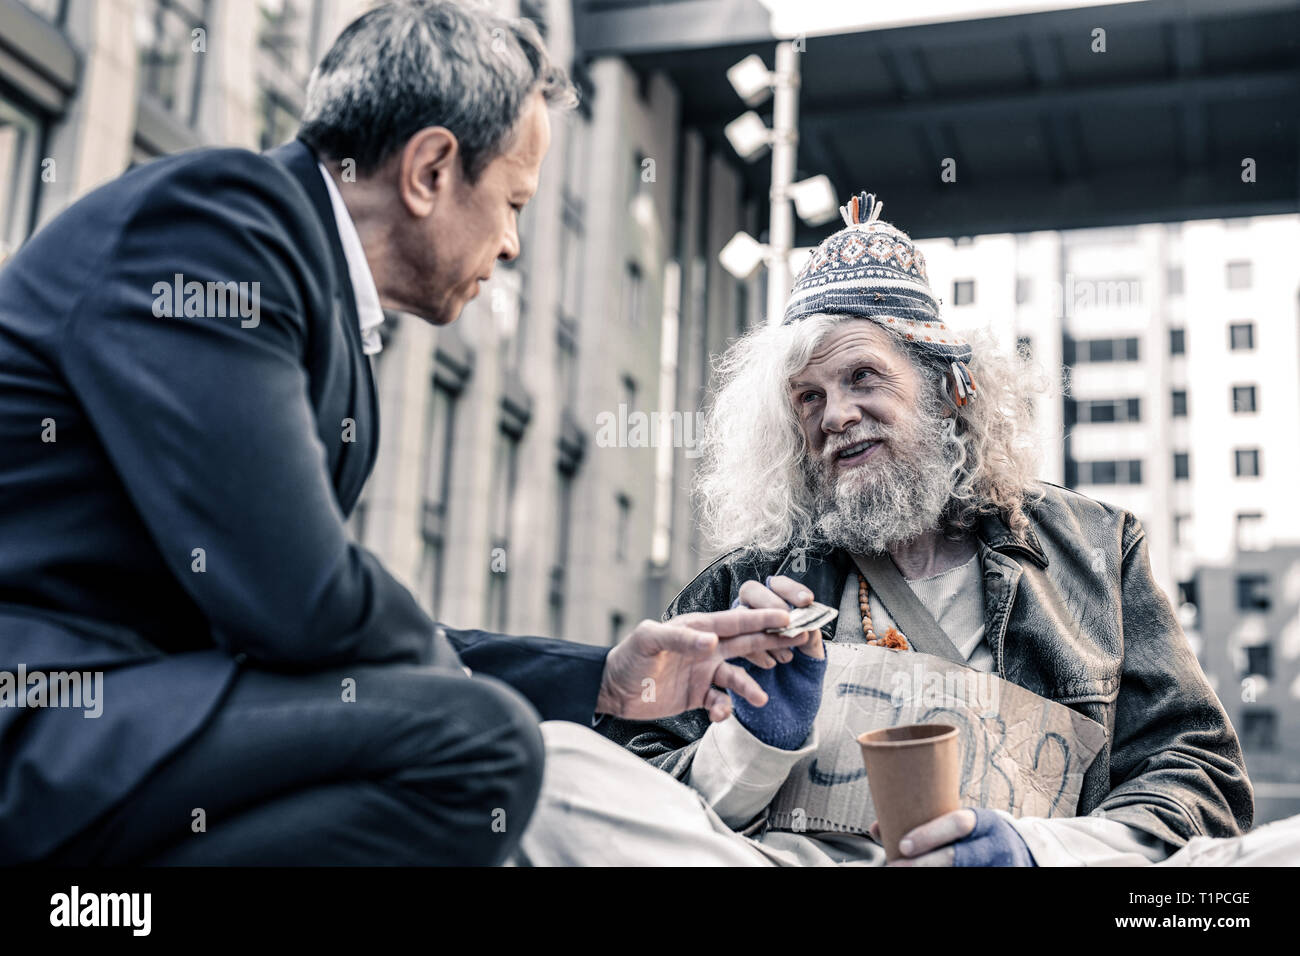 Dirty miserable homeless man taking dollar bill from hands of kind man - Stock Image